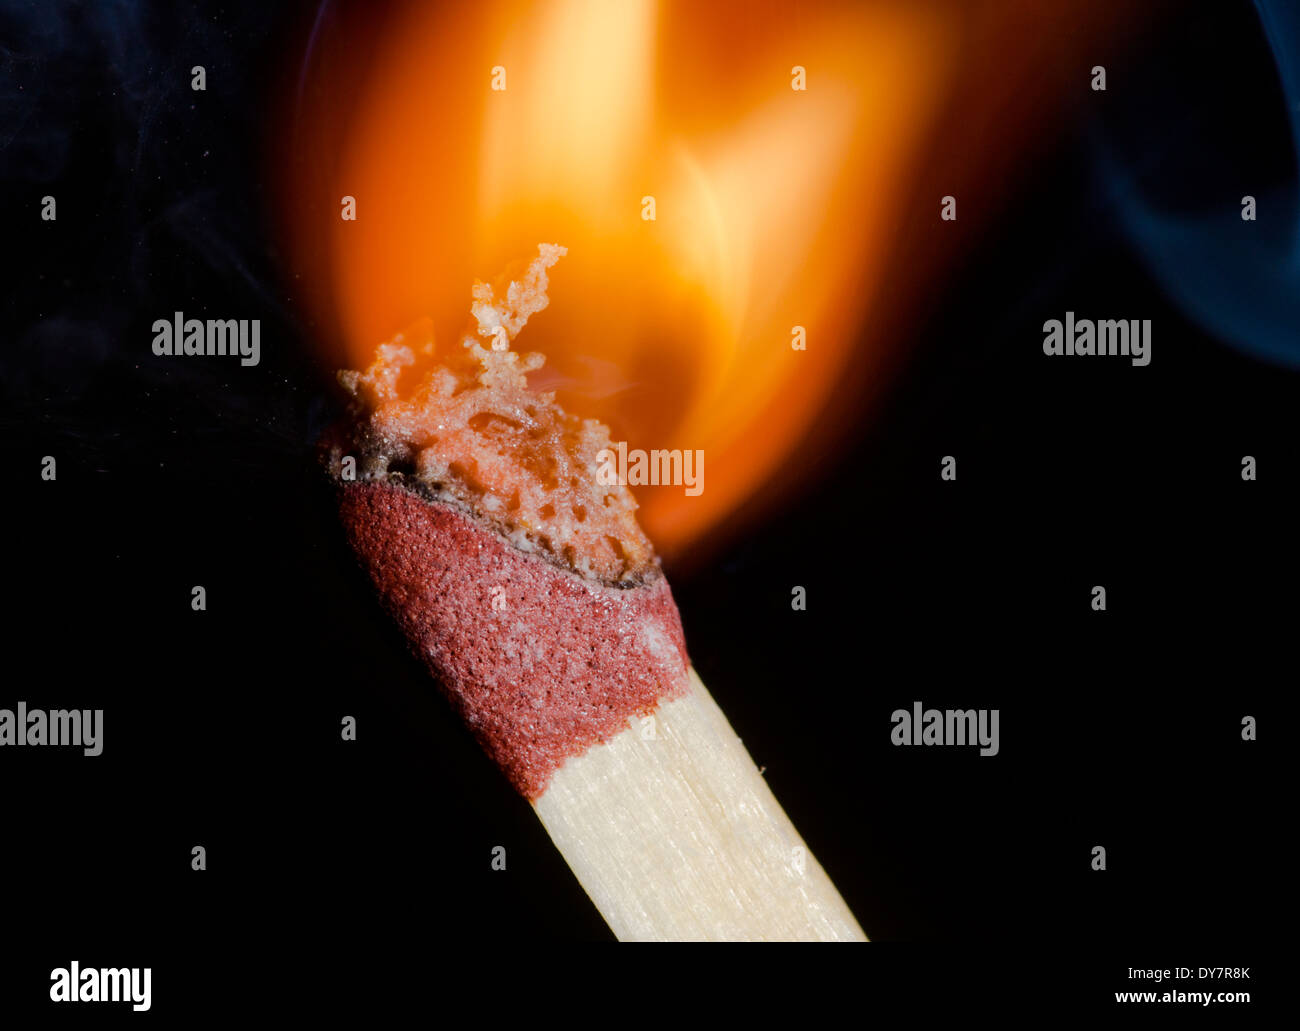 Match igniting on a black background. - Stock Image